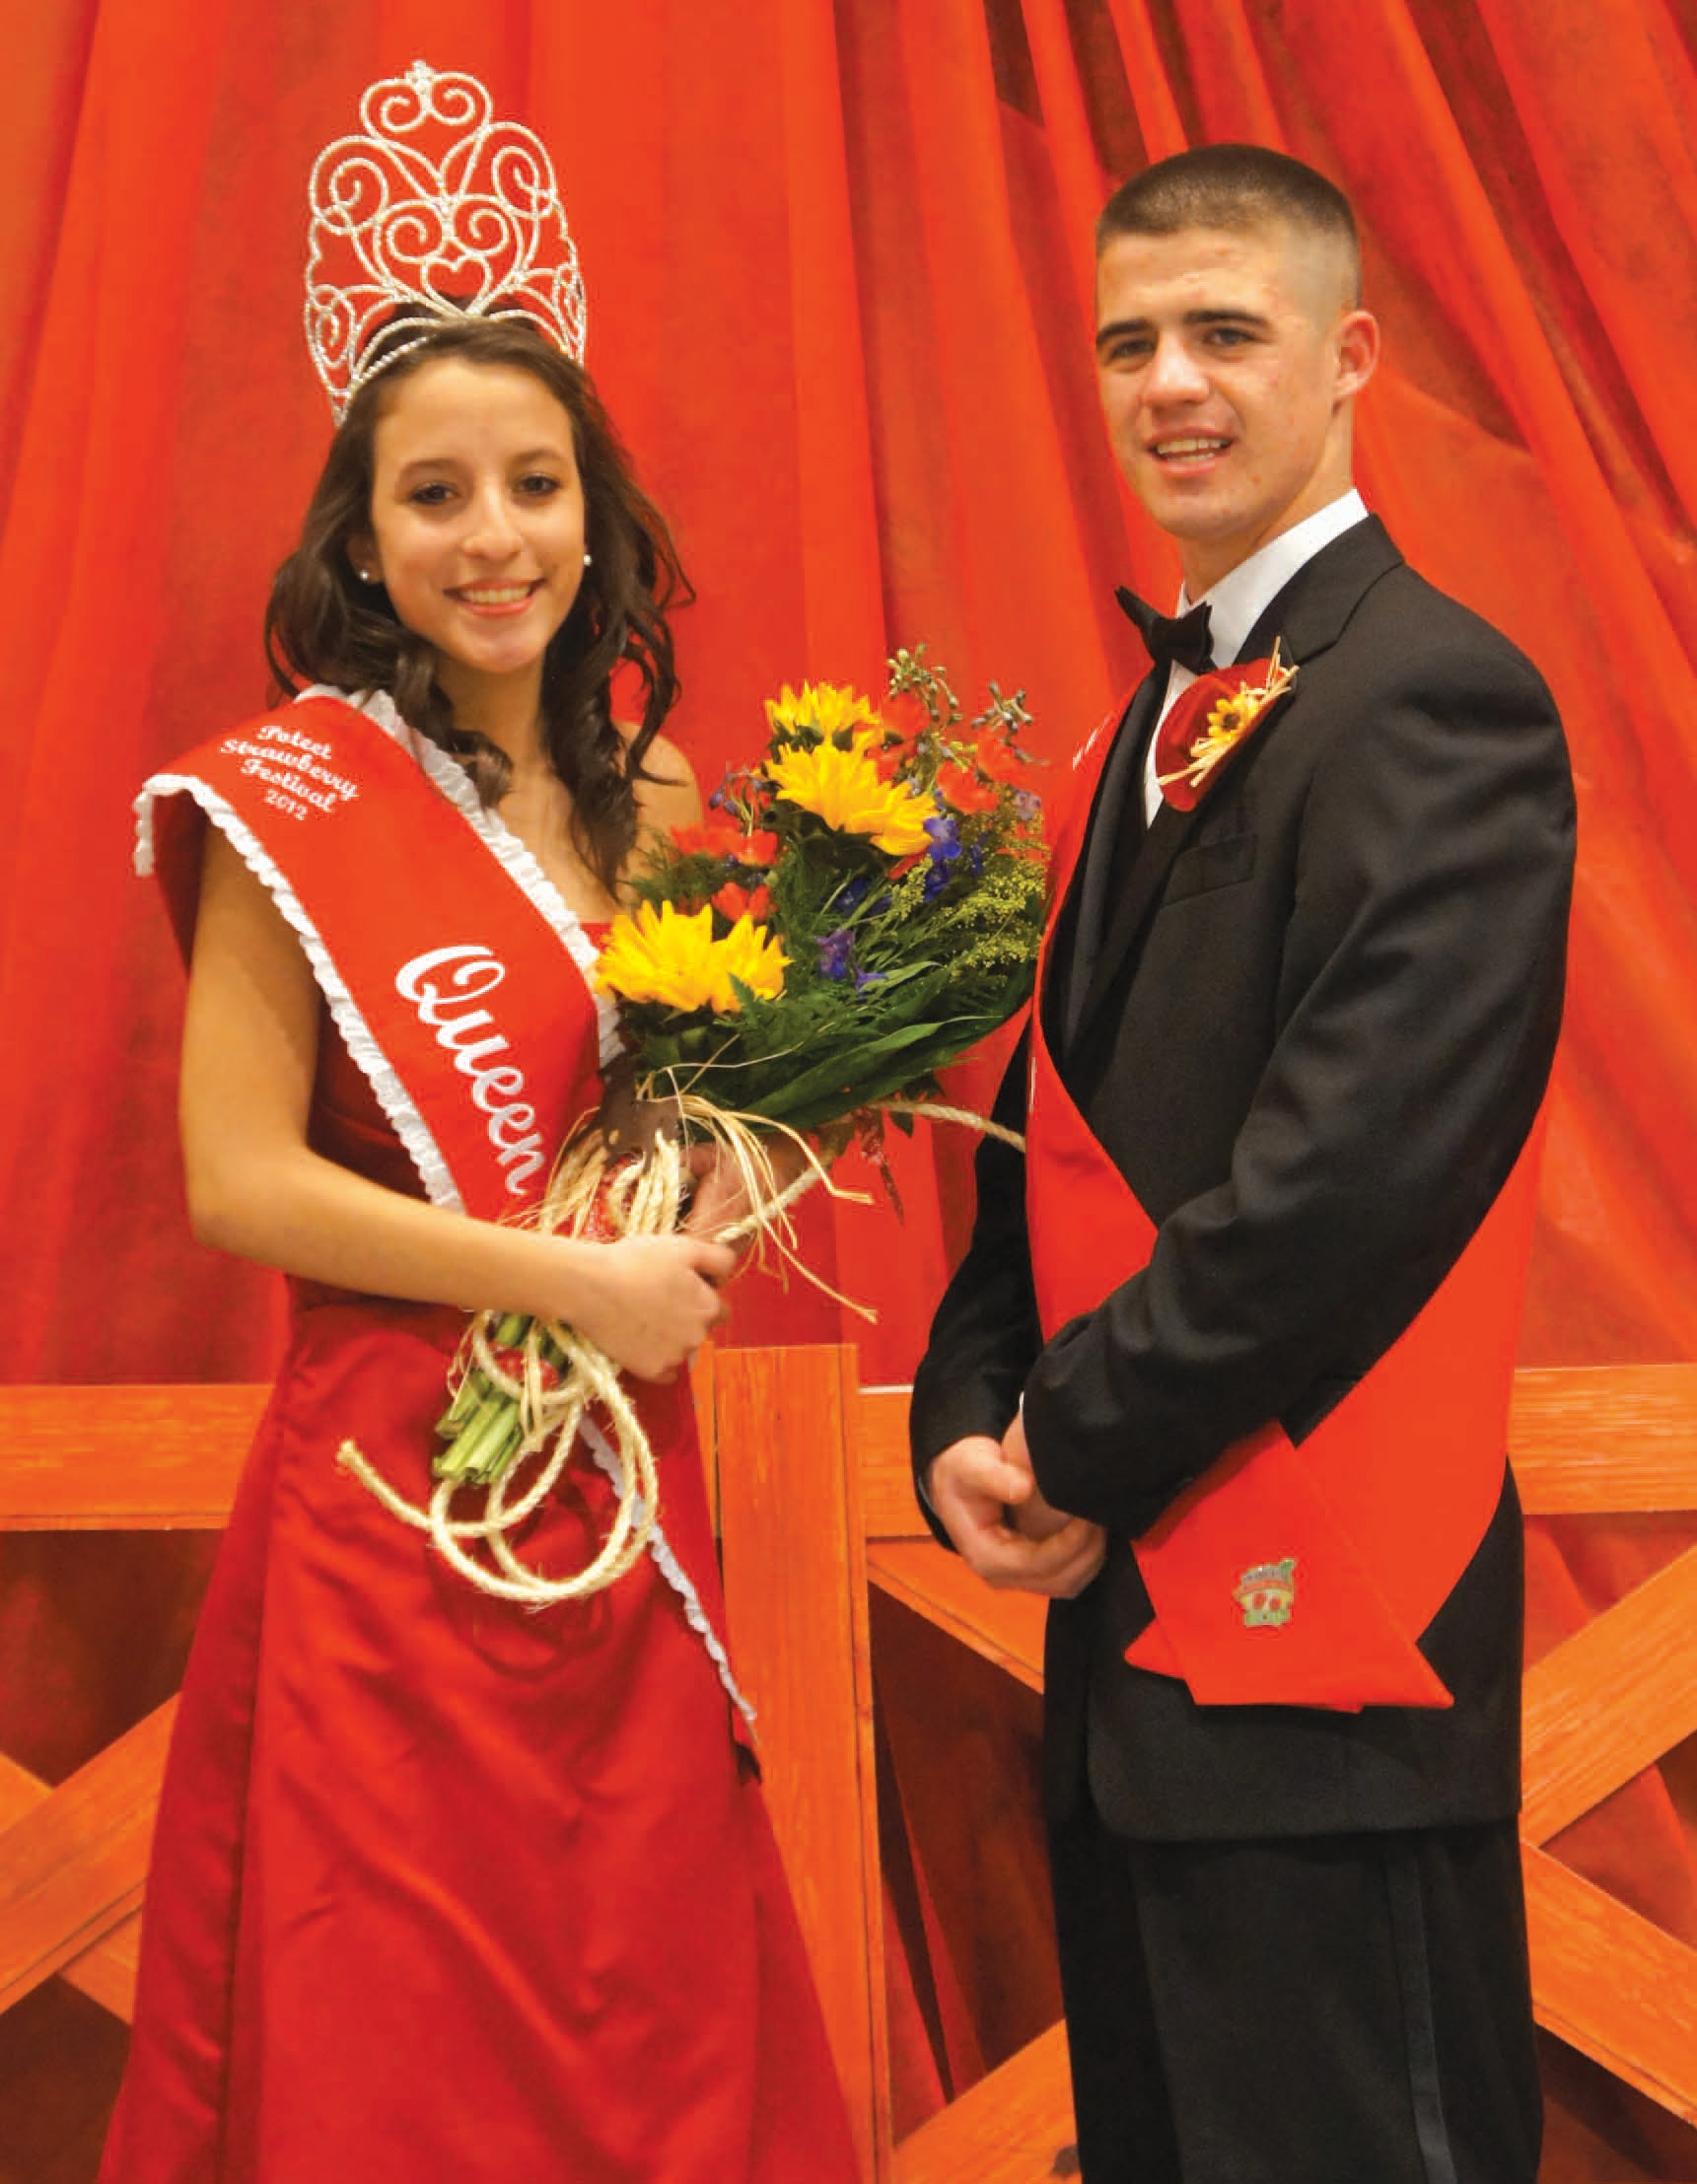 Reigning over the 65th annual Poteet Strawberry Festival are Queen Leslee Ramon and King Brandon Christopher Lopez.